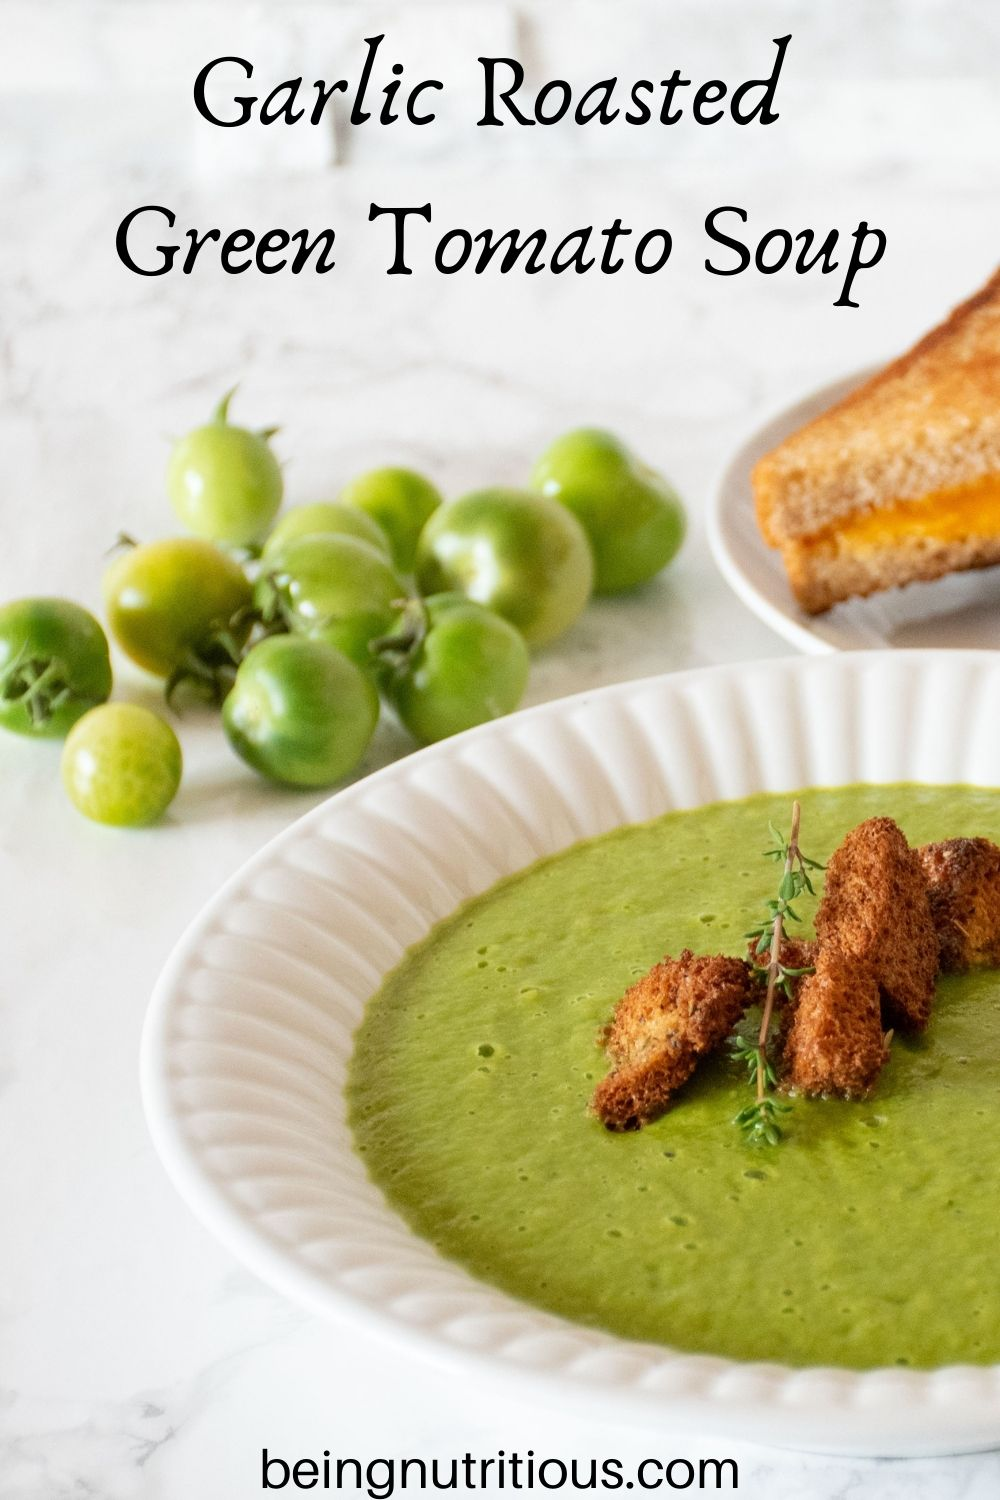 Green soup in a bowl with homemade croutons. Whole green grape tomatoes in background. Text overlay: Garlic Roasted Green Tomato Soup.